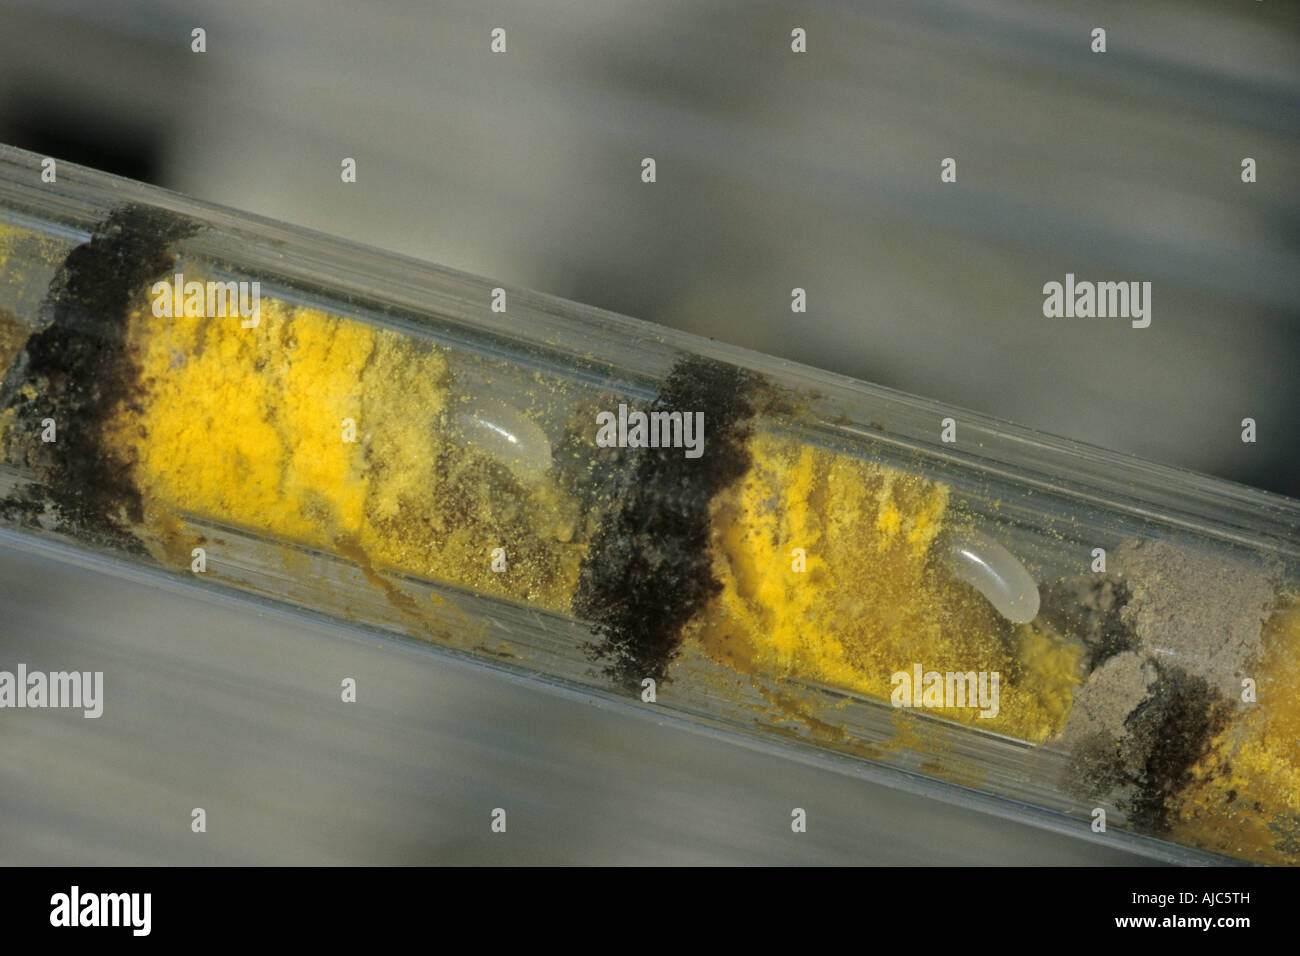 glass tube with pollen and eggs of wild bees - Stock Image